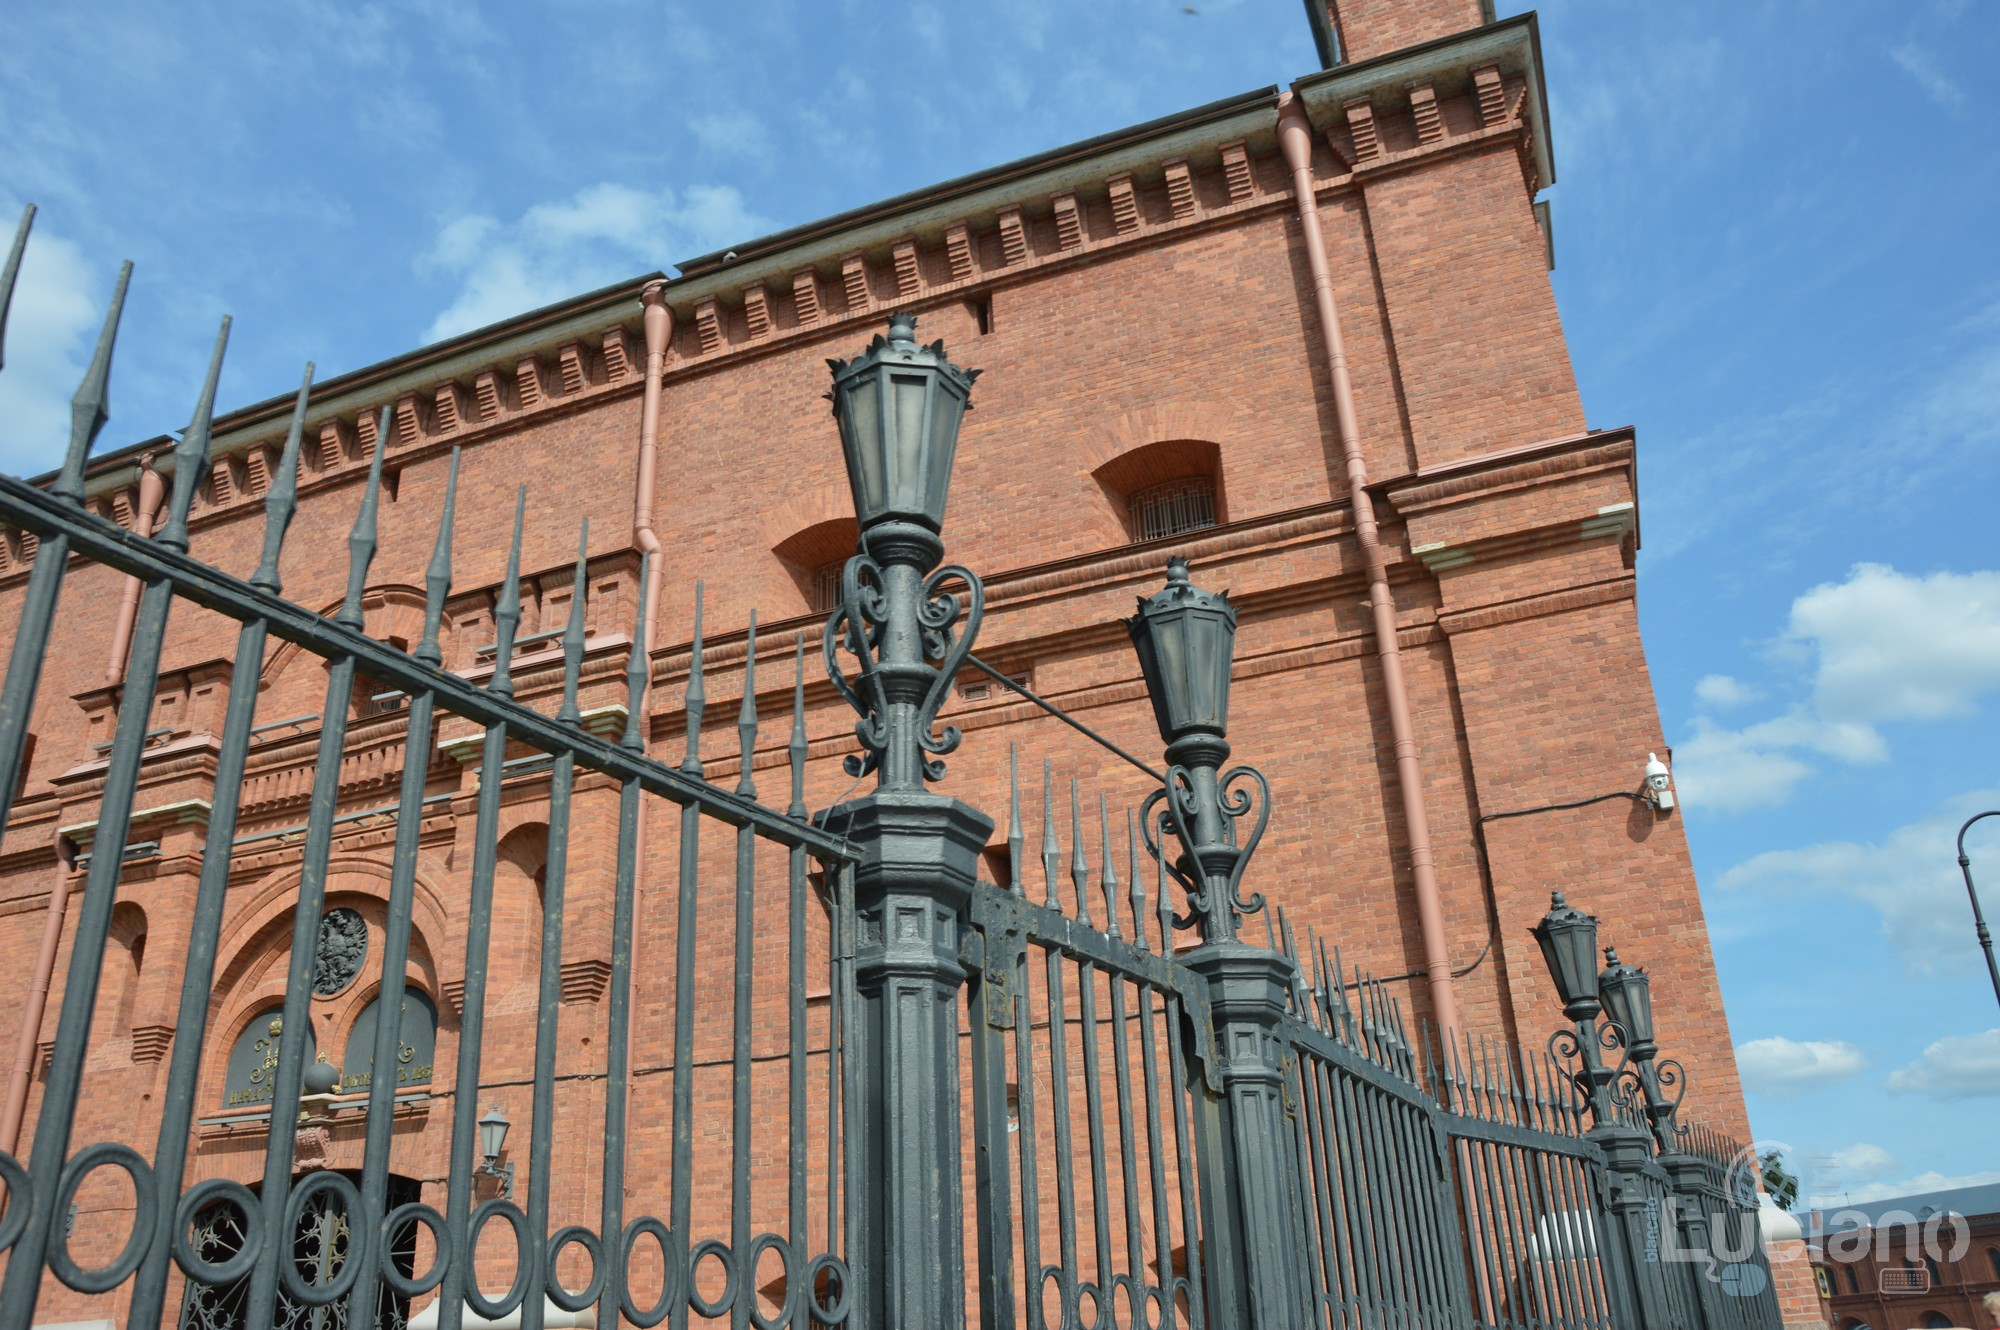 Military-Historical-Museum-of-Artillery-Engineer-and-Signal-Corps-St-Petersburg-Russia-Luciano-Blancato- (5)